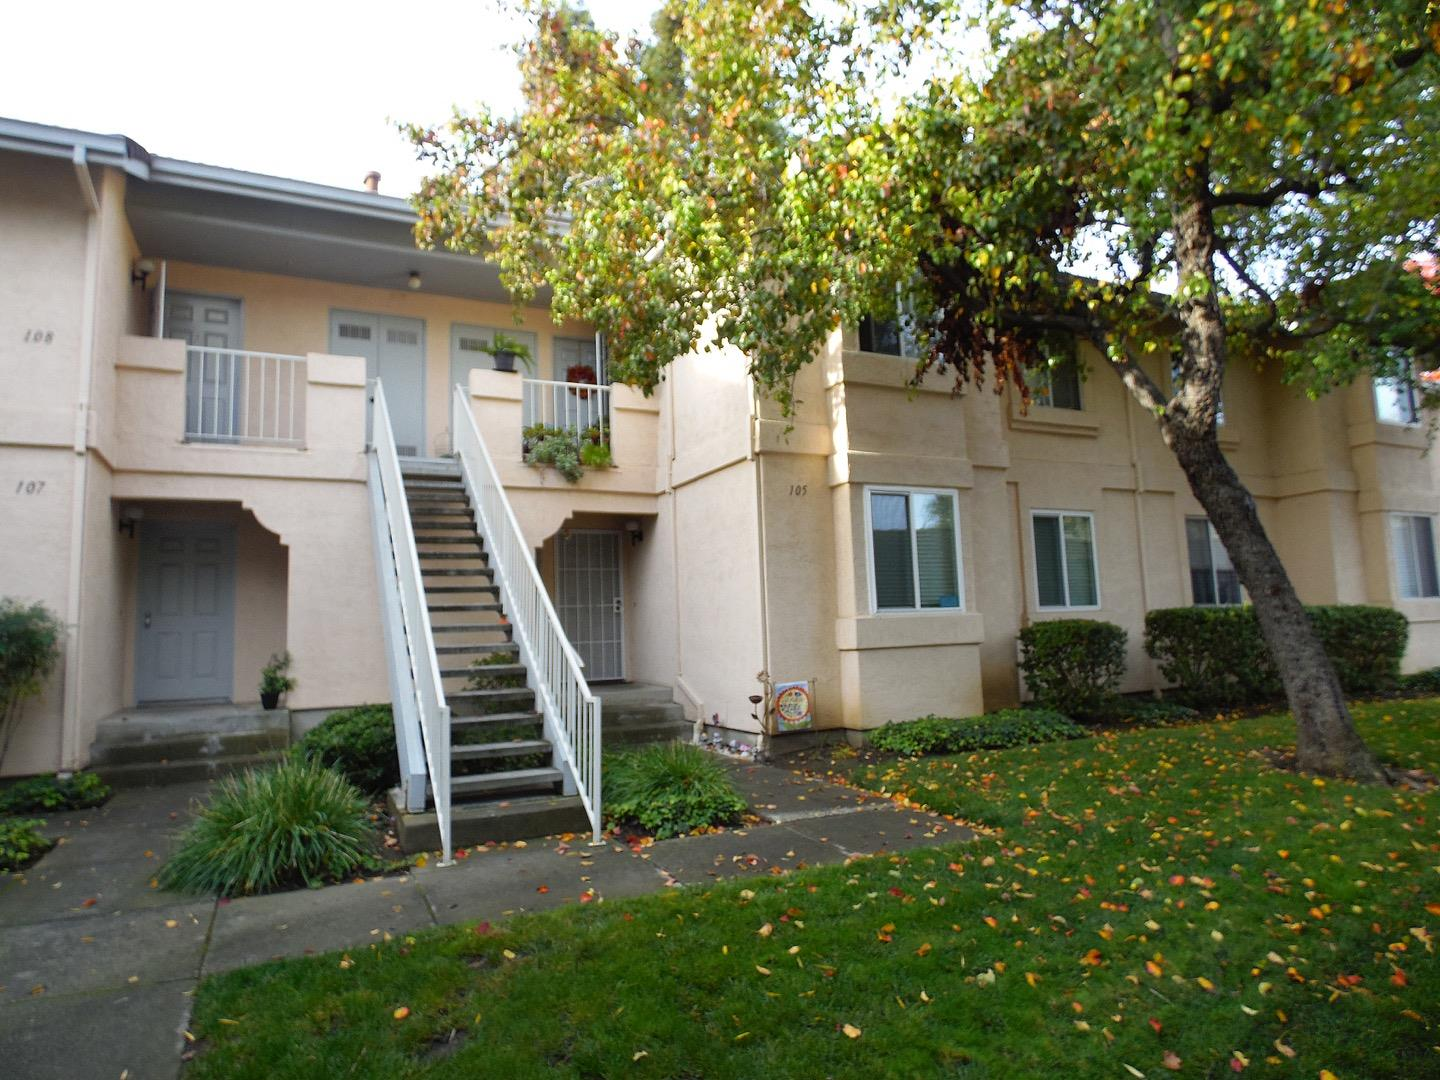 Sought after Brookmeadow complex, near Safeway center and Hwy 580. Amenities include 2 pools, 3 spas, clubhouse, tennis courts, playground and large park. Updated 2-bedroom 2-bath first floor condo. Dual pane windows new in 2016. New blinds 2008. Kitchen updated fall 2017. New vinyl flooring, new cabinets, new counters. Fridge new 2002, Dishwasher 2011, stove 2007, carpets 2008. Walk-in shower in master bath updated 2007. Hall bath updated 10/18. New water Heater 2014. Air conditioner/furnace new 2002. New thermostat 2016. Fire sprinkler system. In-unit laundry, with new stackable washer/dryer 2017. Secluded location in complex, surrounded by green belts. Enclosed patio with storage and sensor light. 2 assigned parking spaces, one covered. Lots of guest spaces. Lower HOA fees for above average amenities.